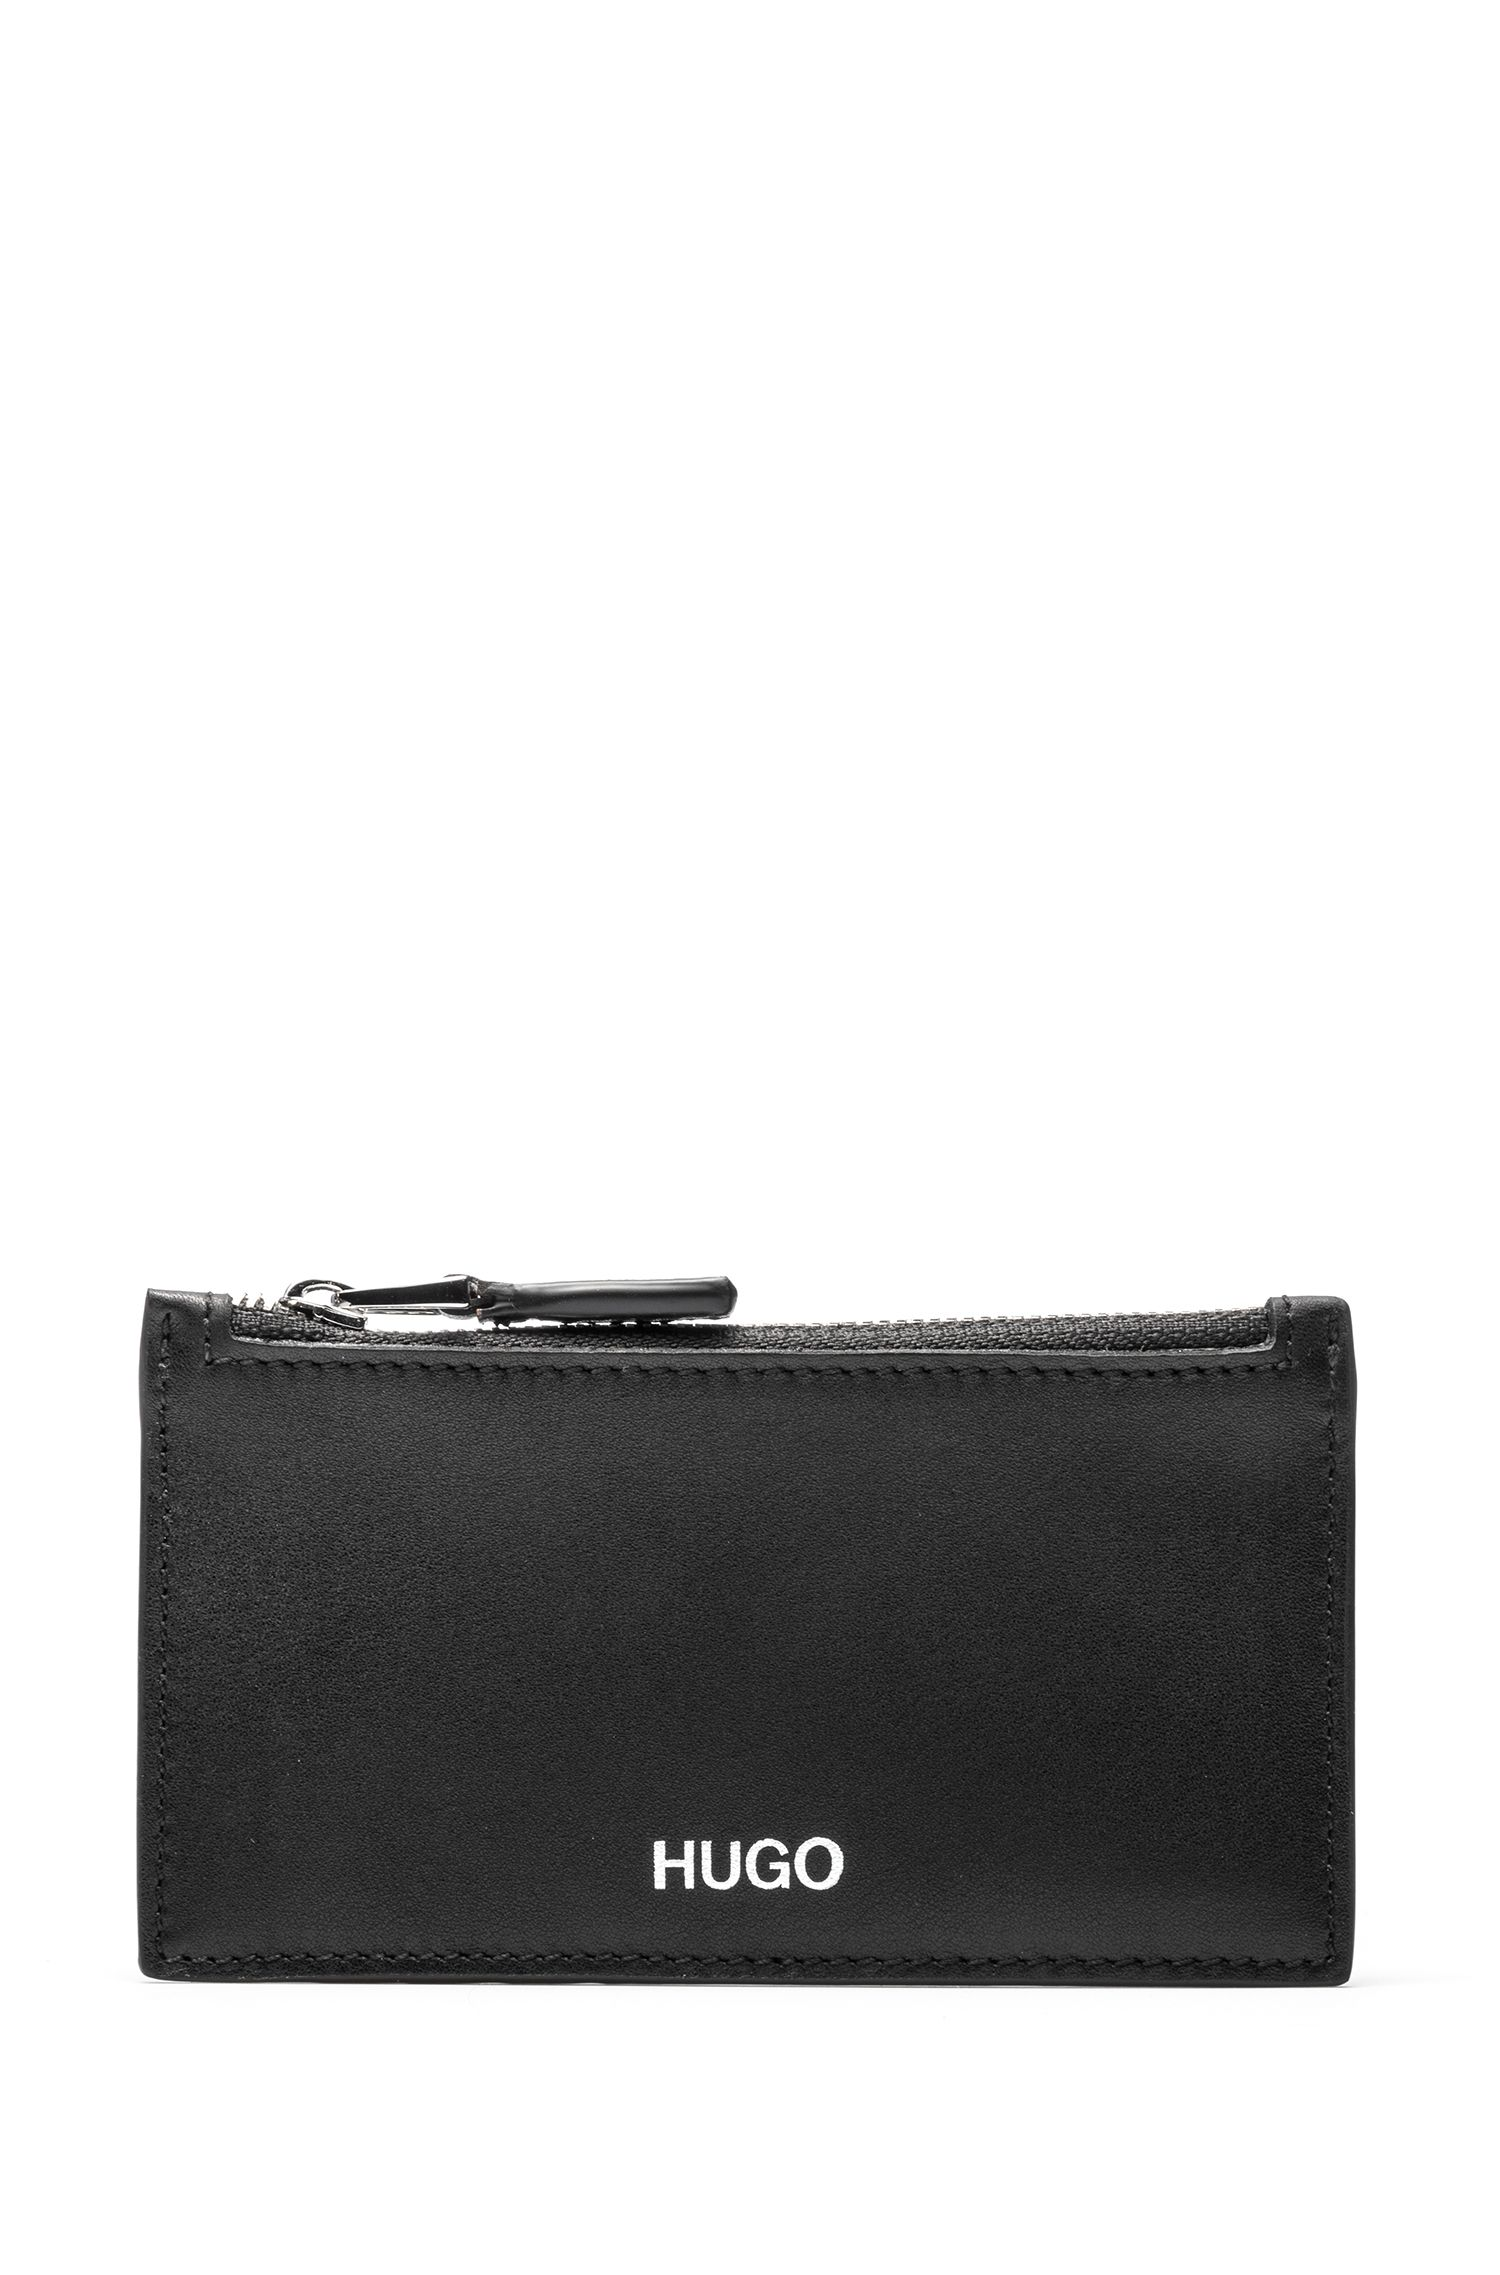 Nappa-leather card holder with zipped coin pocket, Black